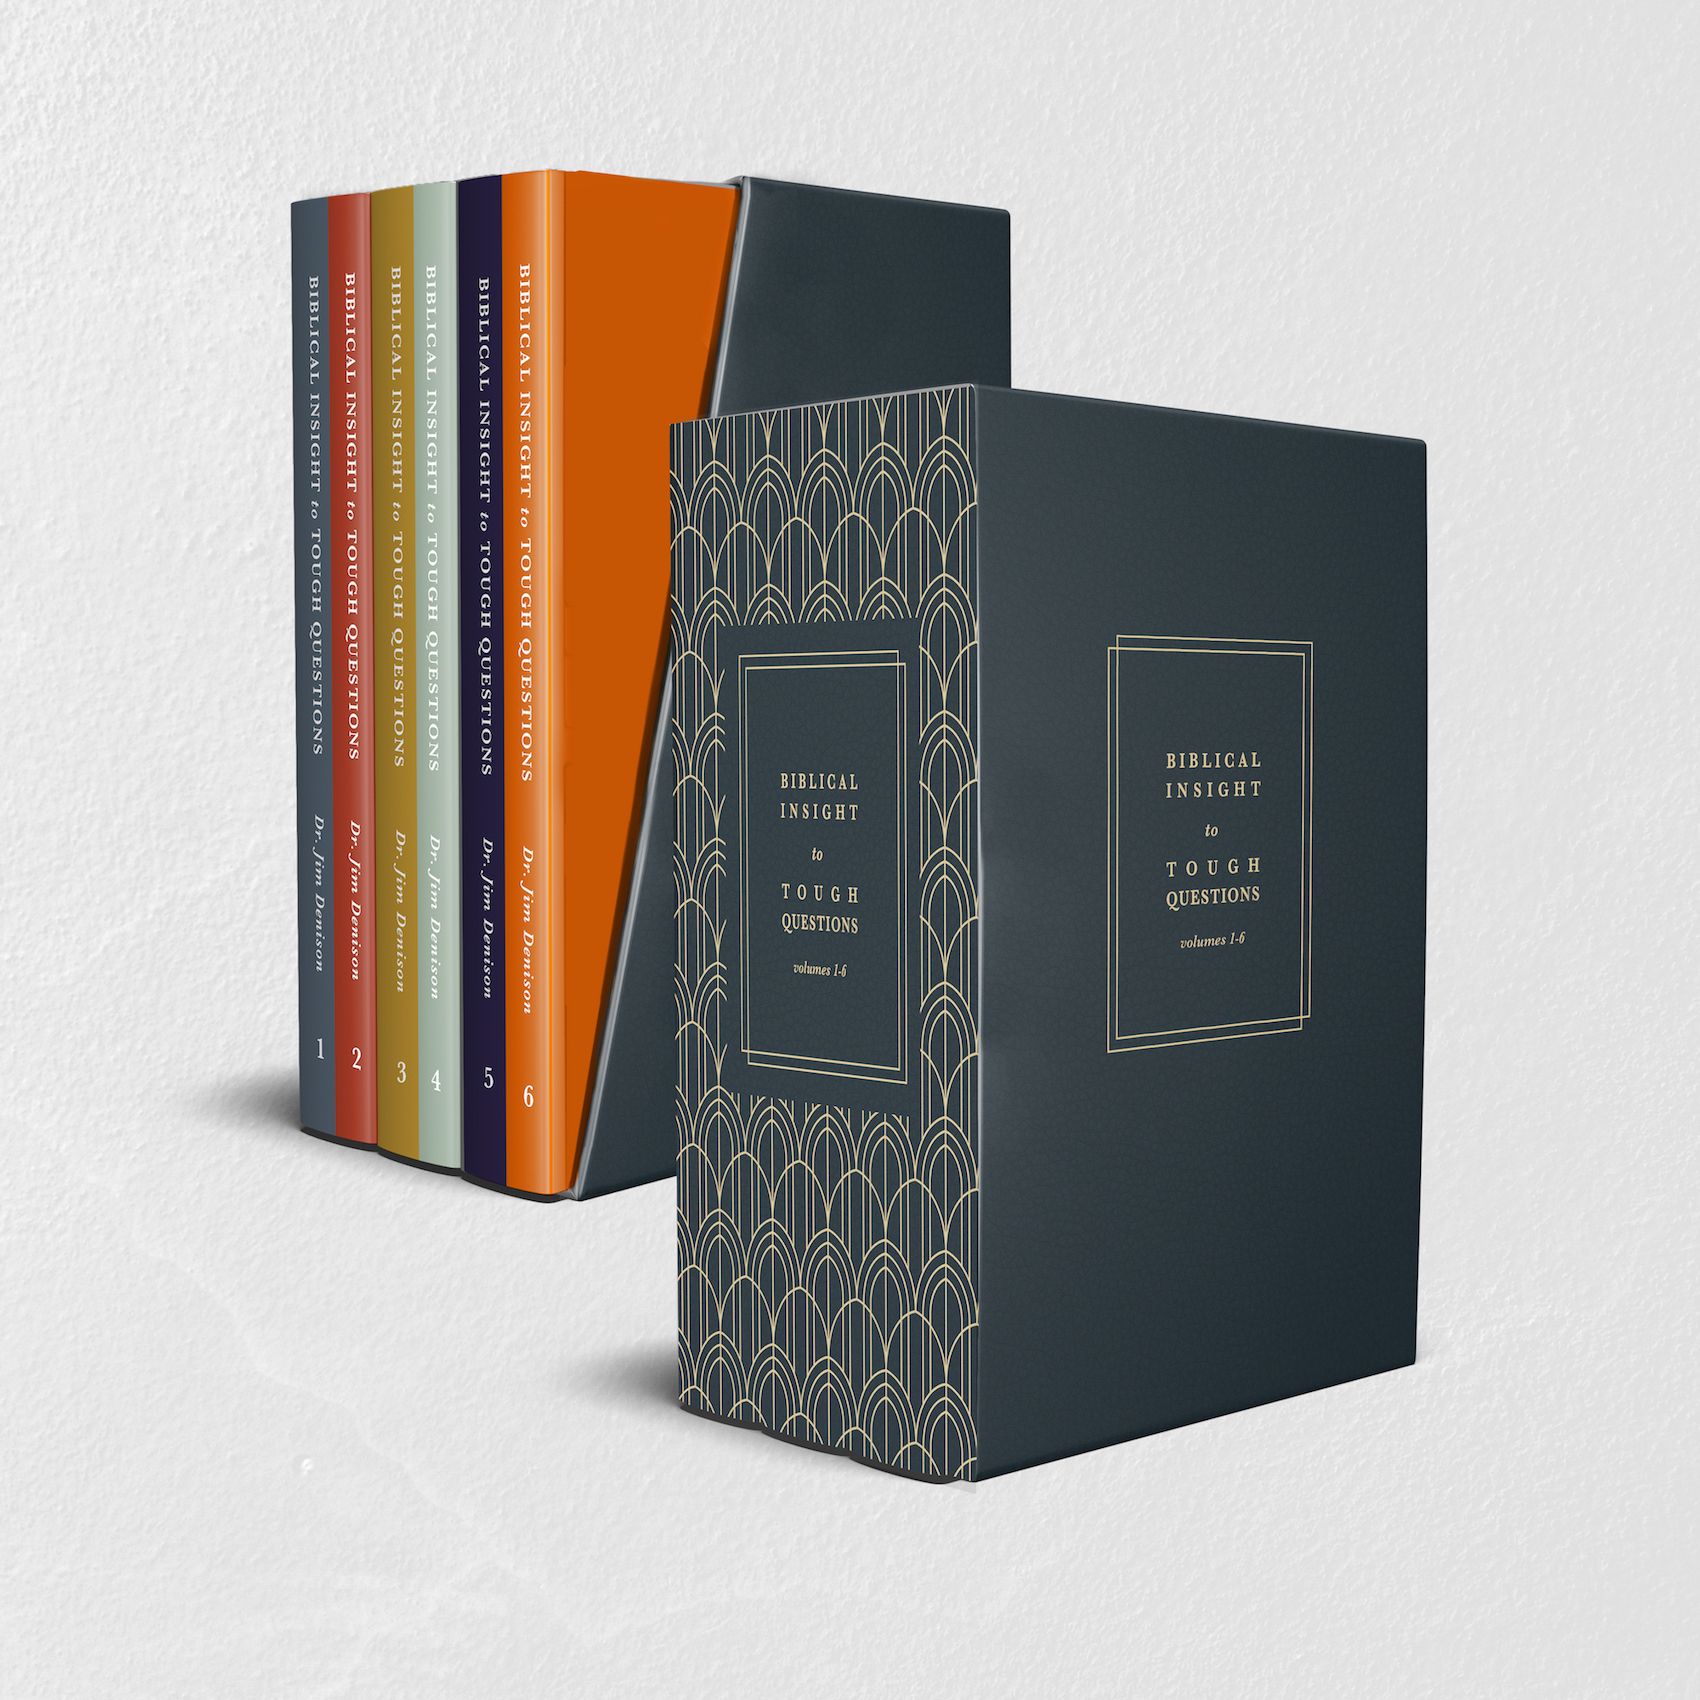 """Request our beautifully designed, limited-edition box set of the """"Biblical Insight to Tough Questions"""" series."""